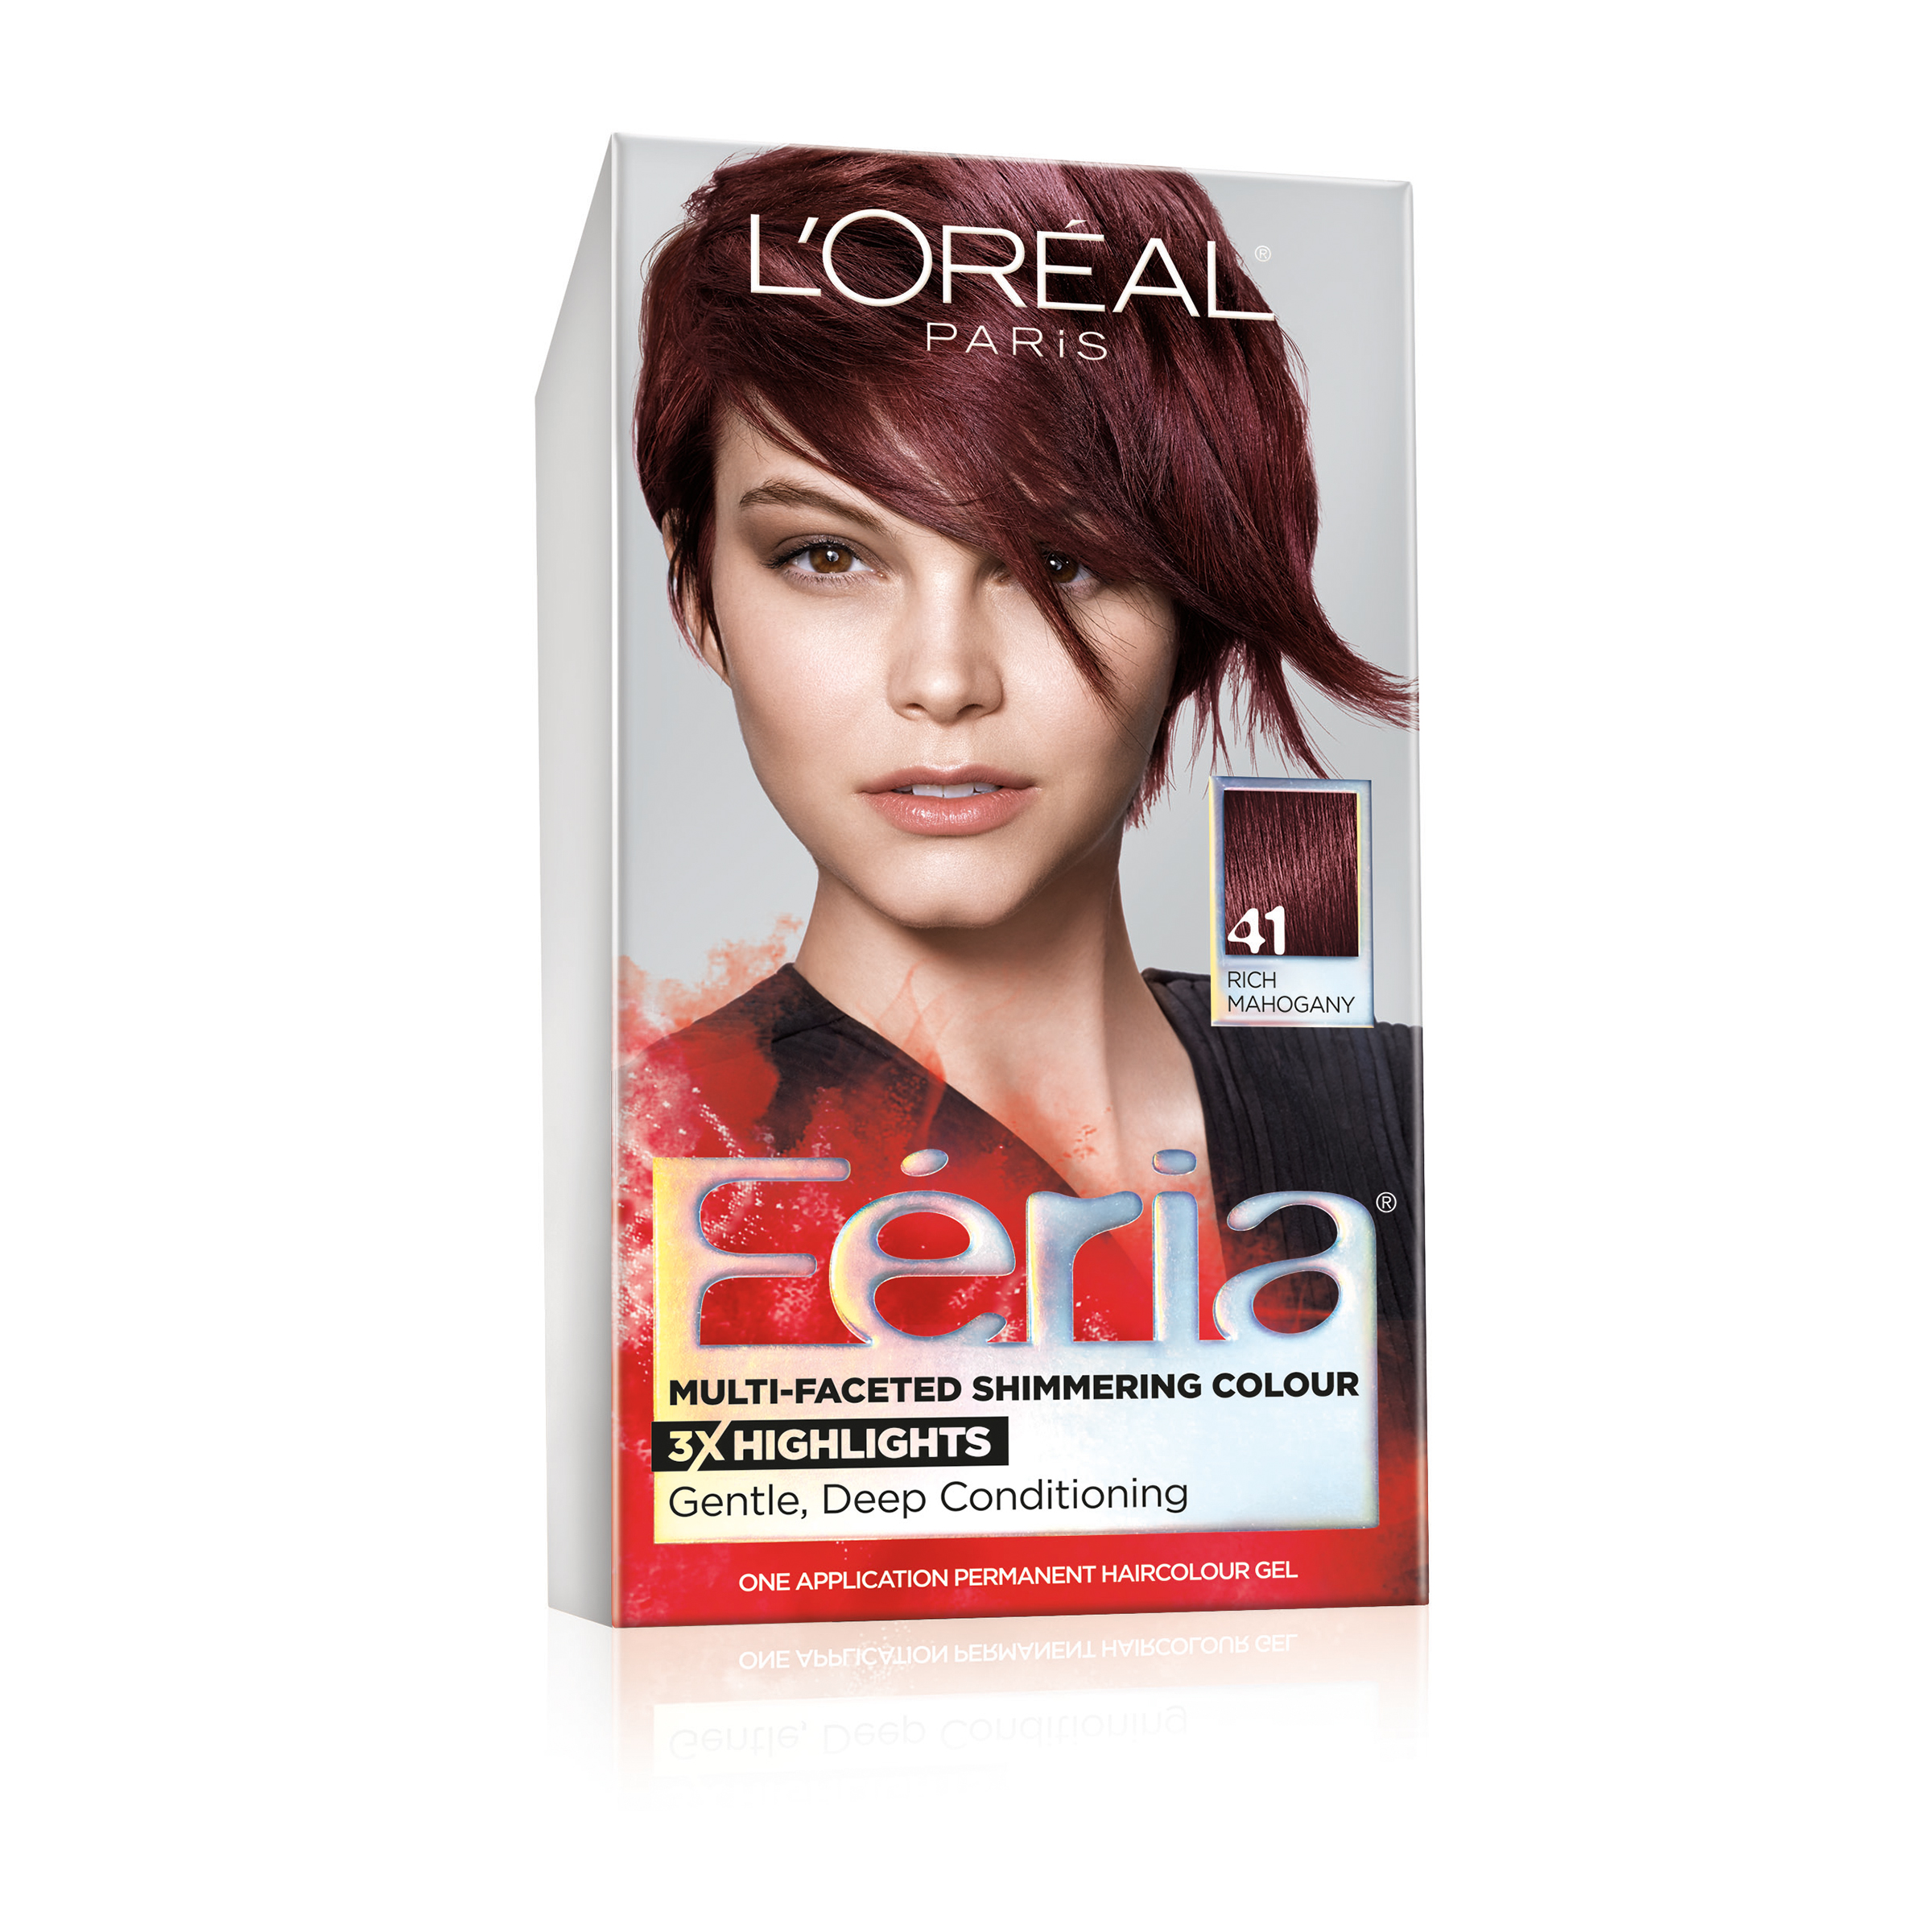 Loreal Paris Feria Hair Colors